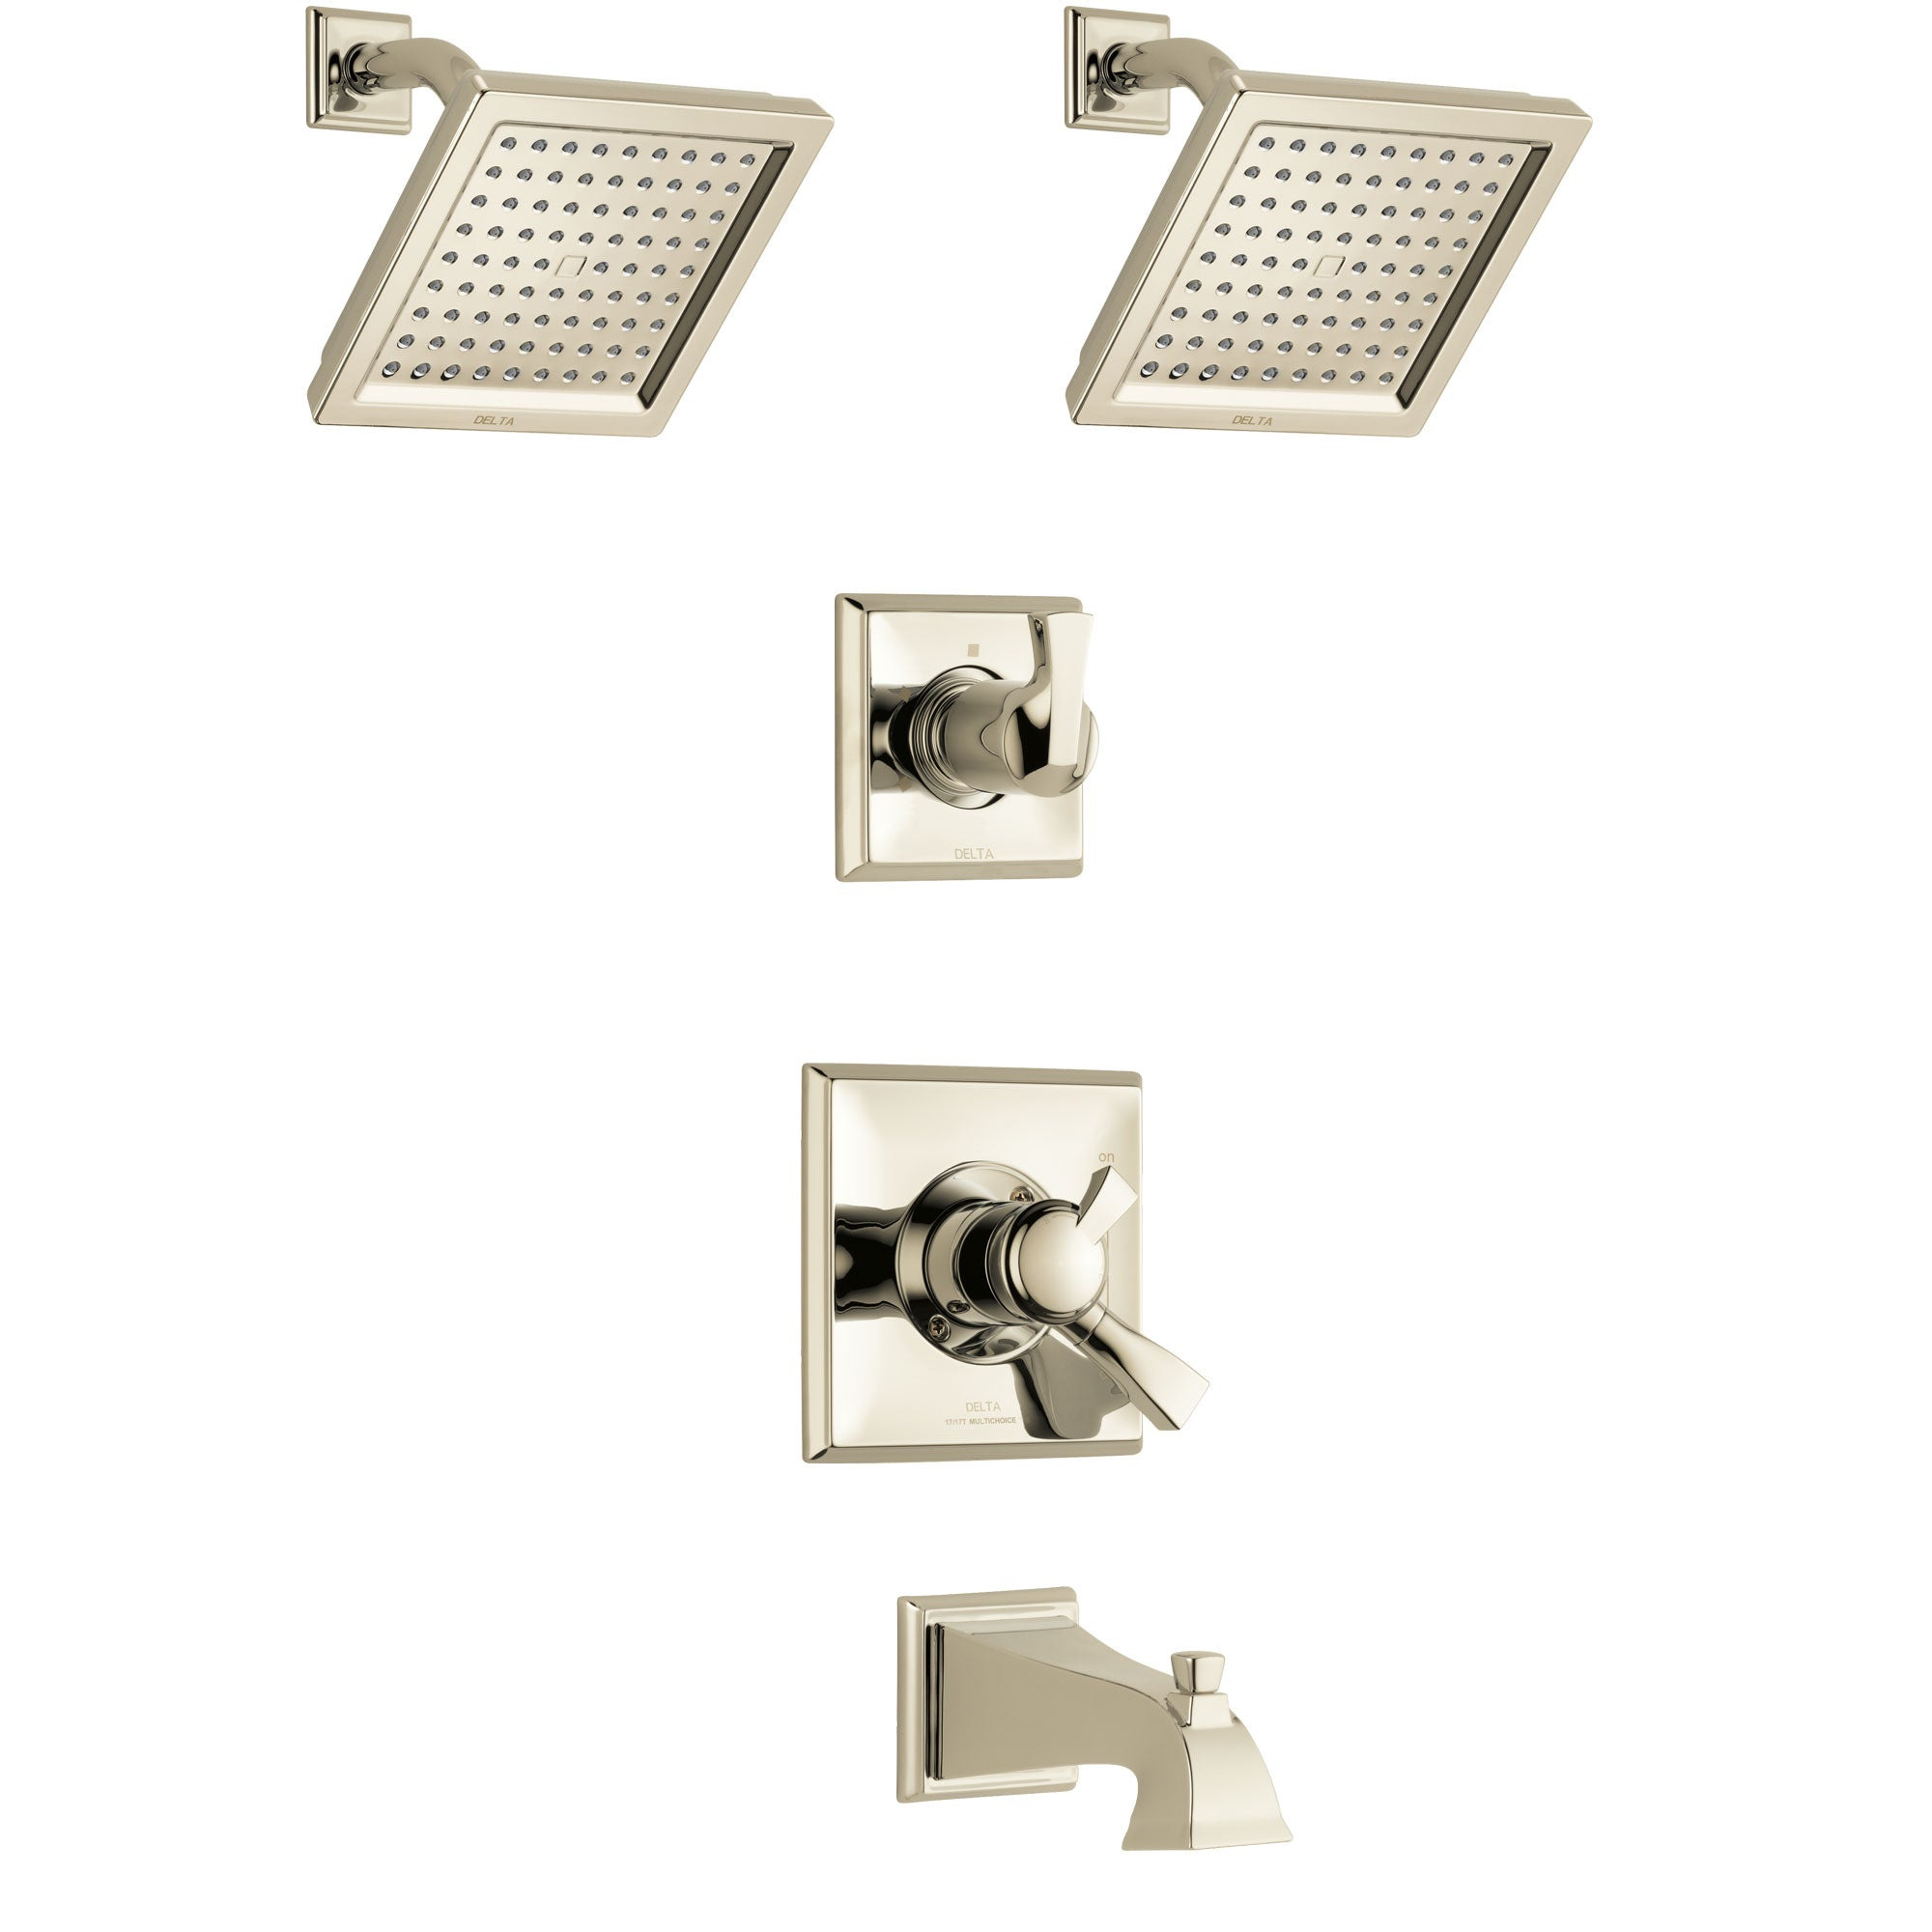 Delta Dryden Polished Nickel Finish Tub and Shower System with Dual Control Handle, 3-Setting Diverter, 2 Showerheads SS17451PN4